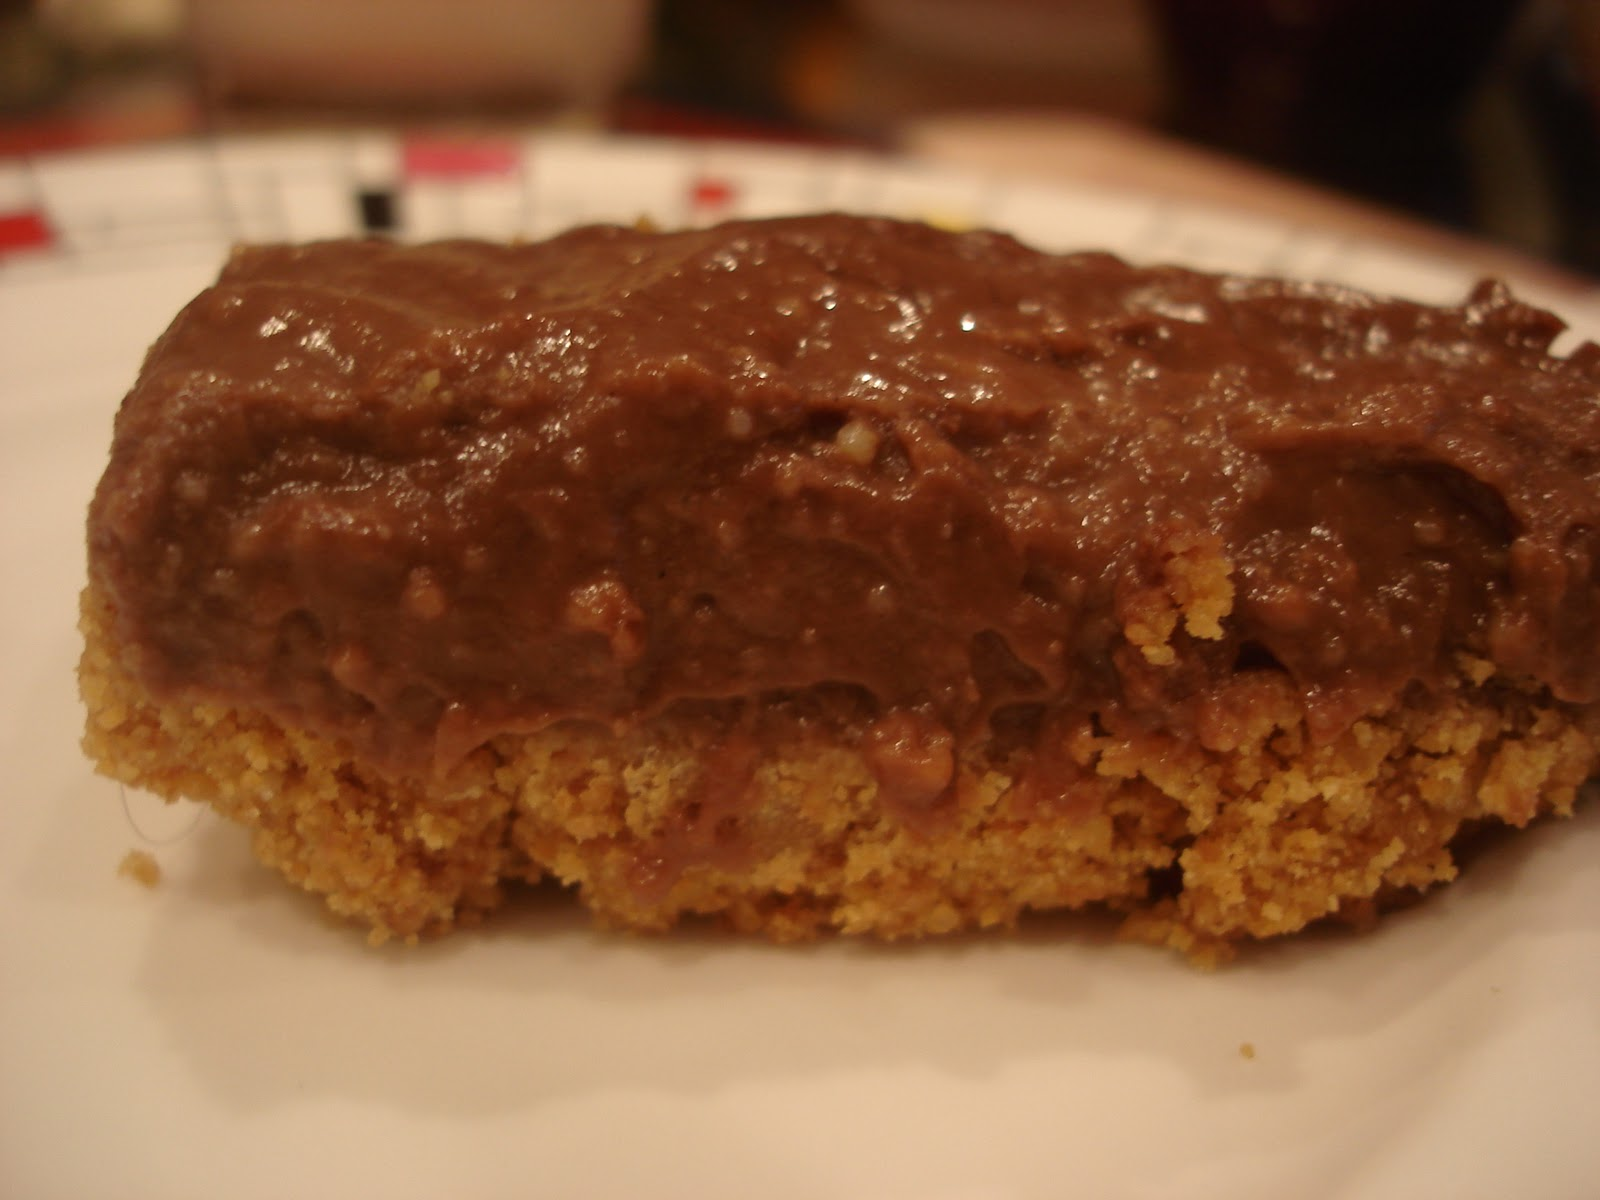 ... : Sasha's Kitchen: Chocolate Pudding Bars from the New Baked Cookbook